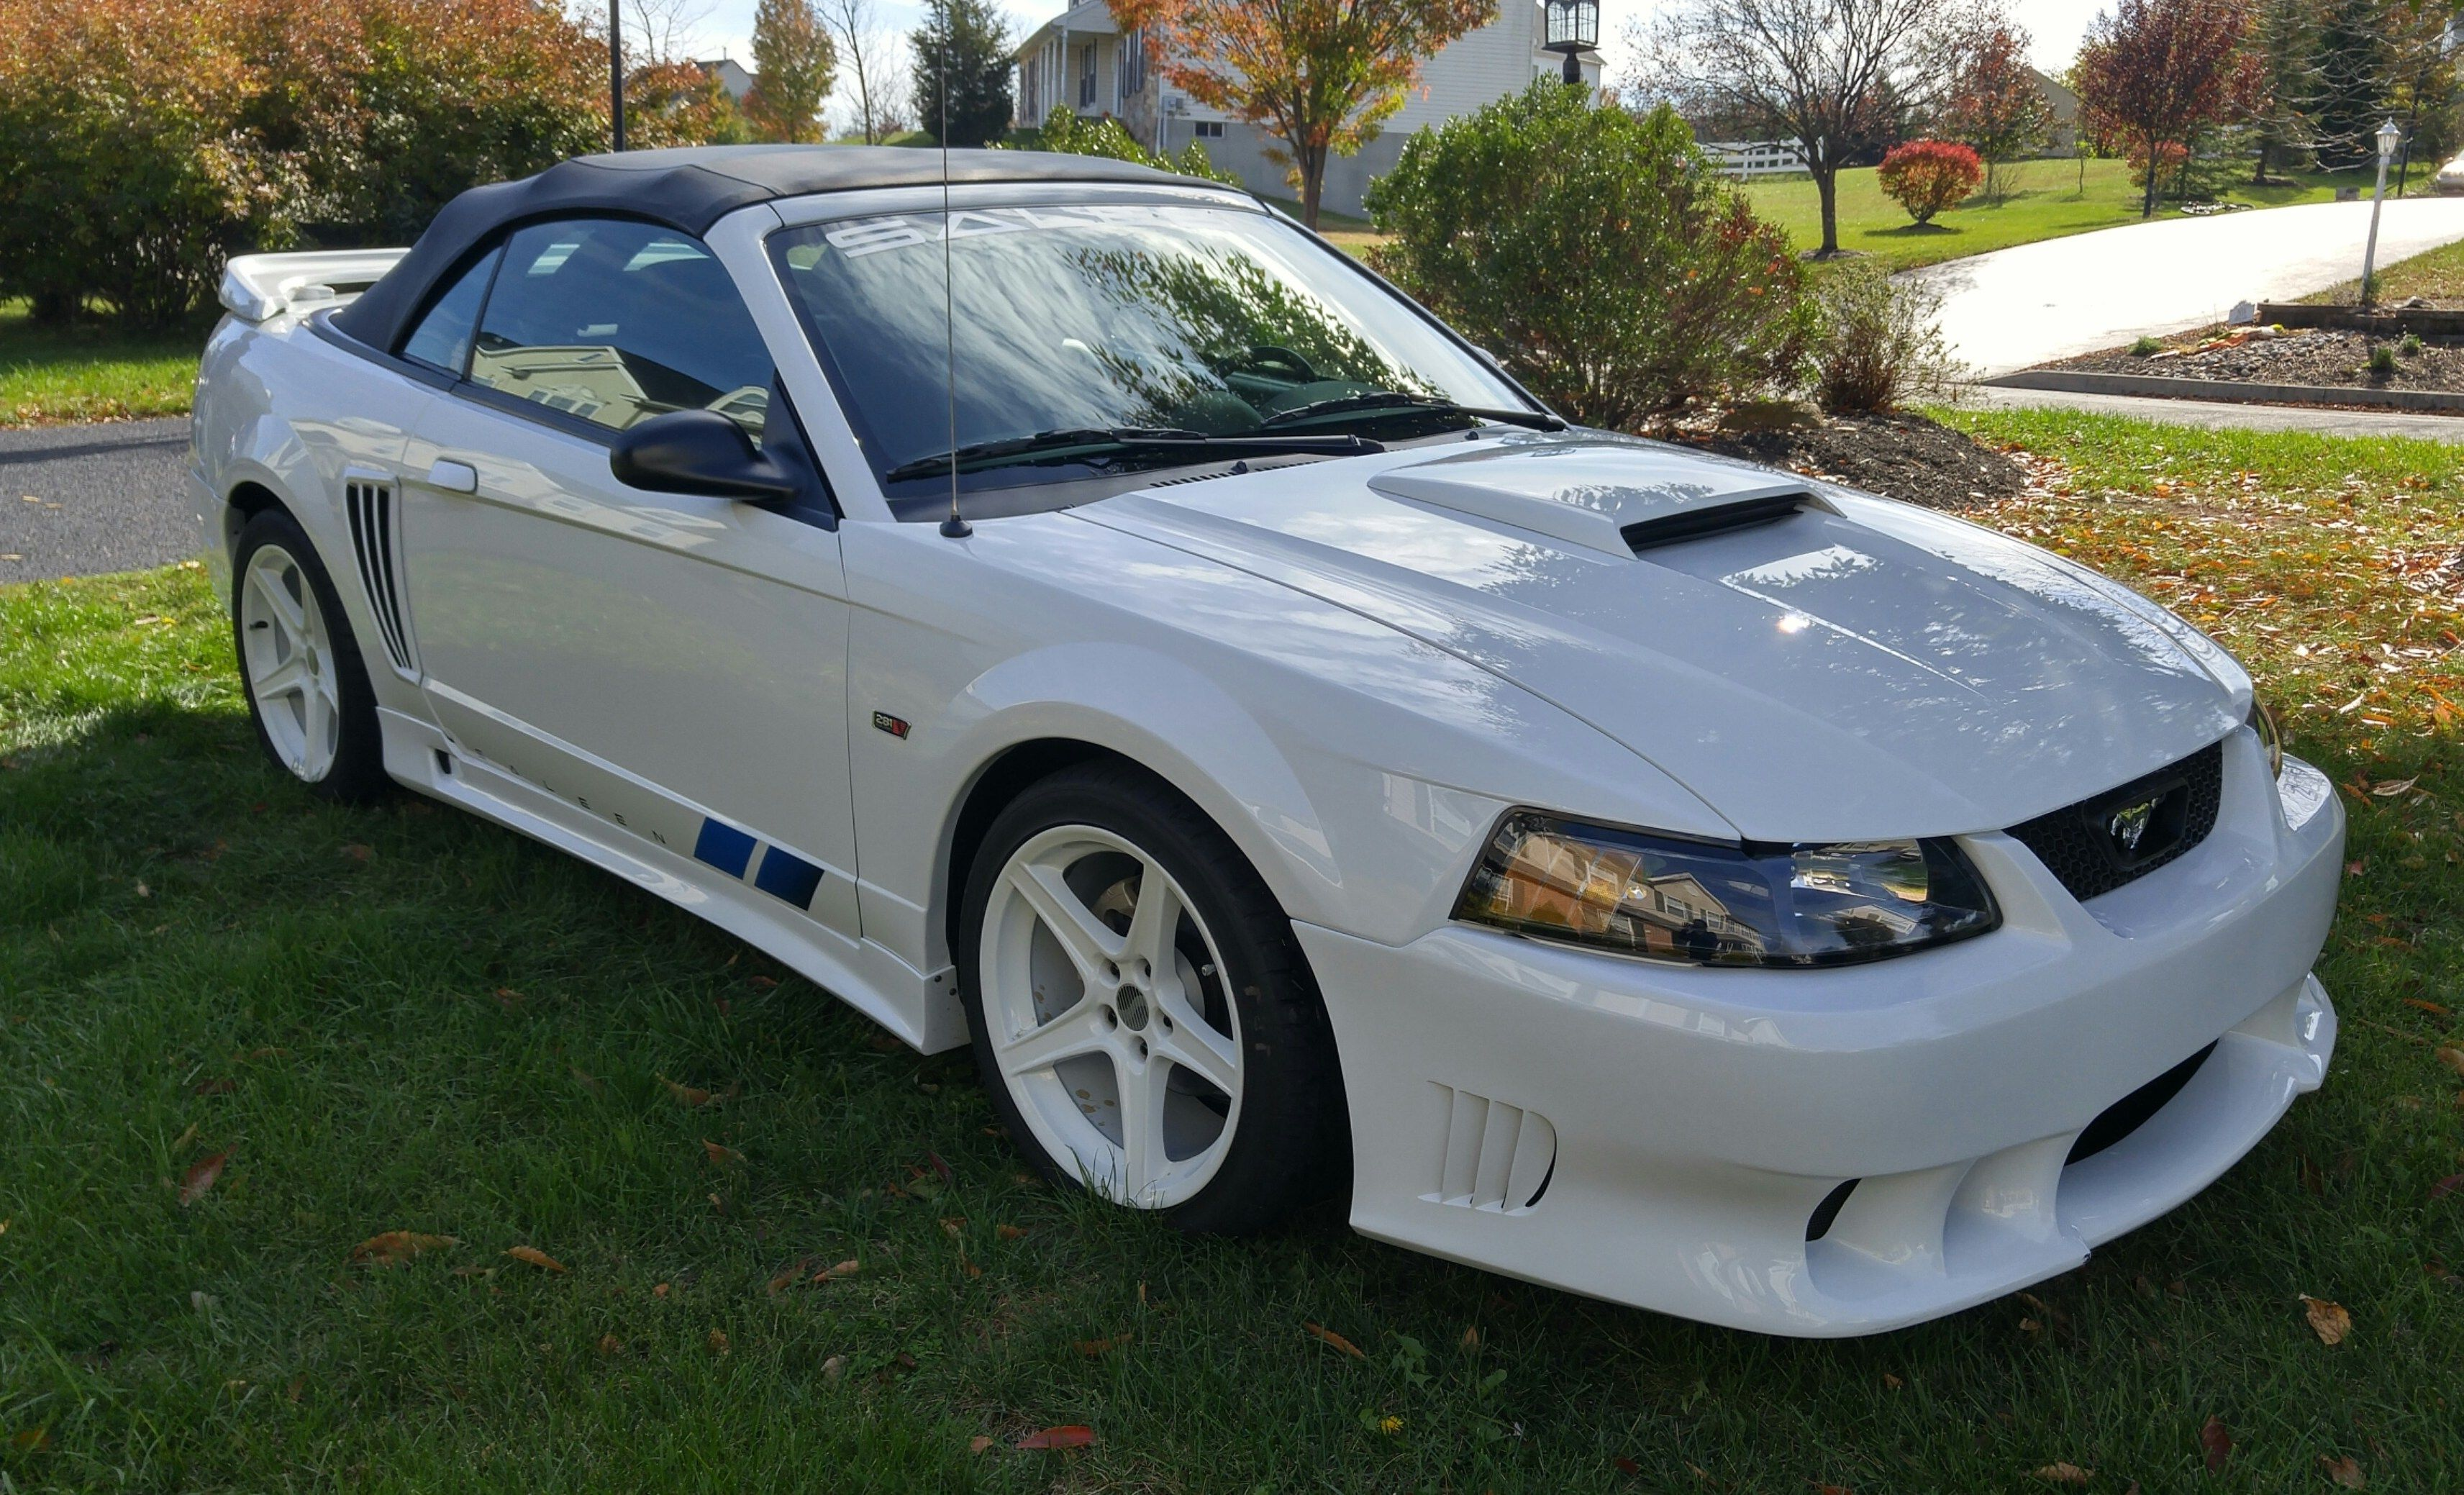 Saleen S281sc Convertible F Ford Mustang Saleen Ford Mustang